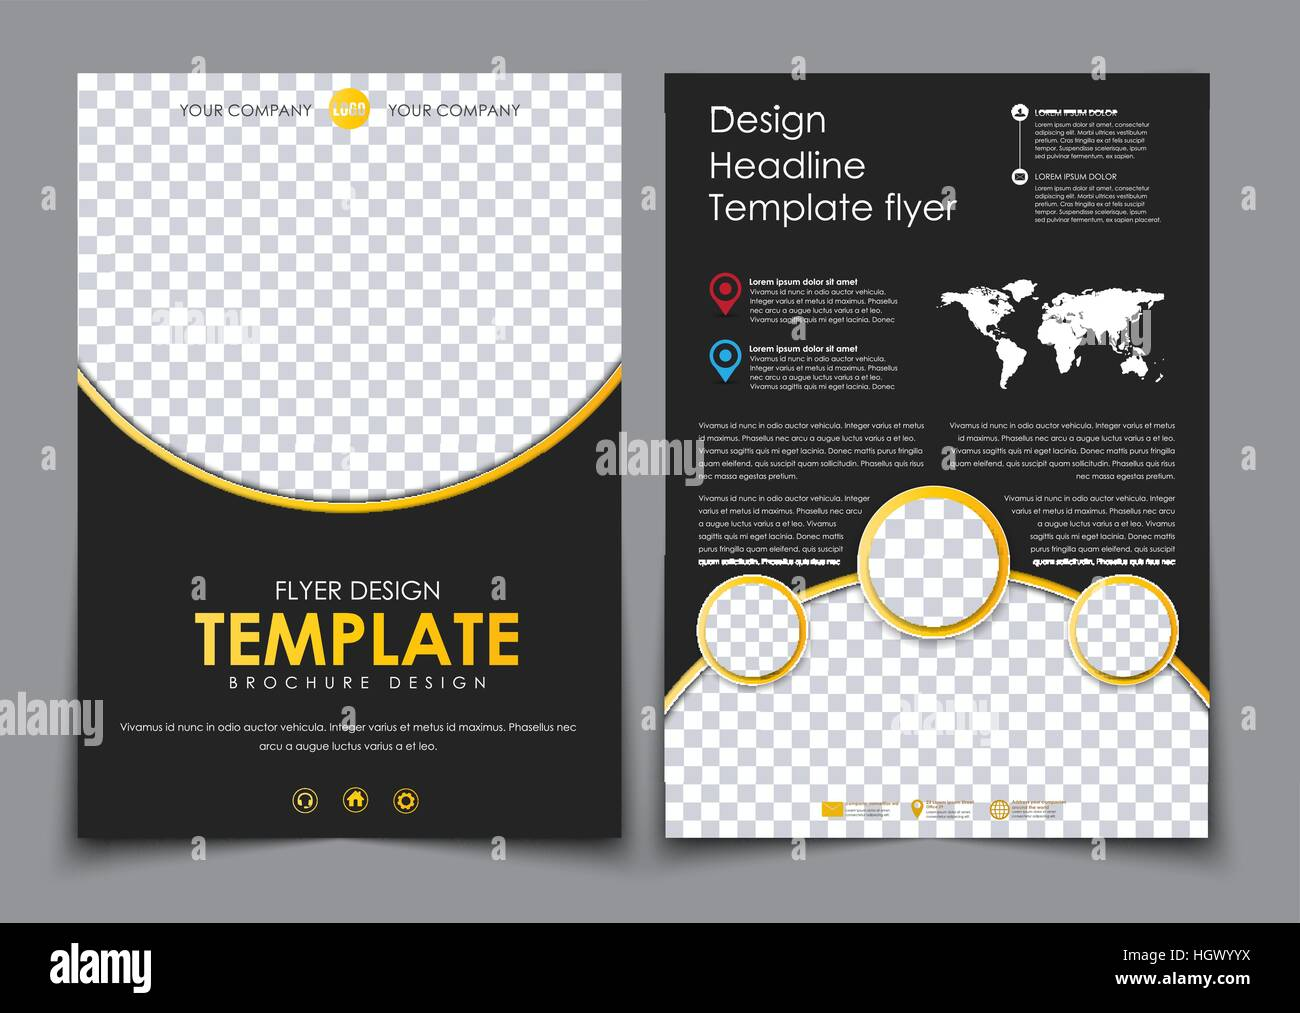 Design Pages Of A Black With Yellow Elements Flyer Template - Brochure template for pages